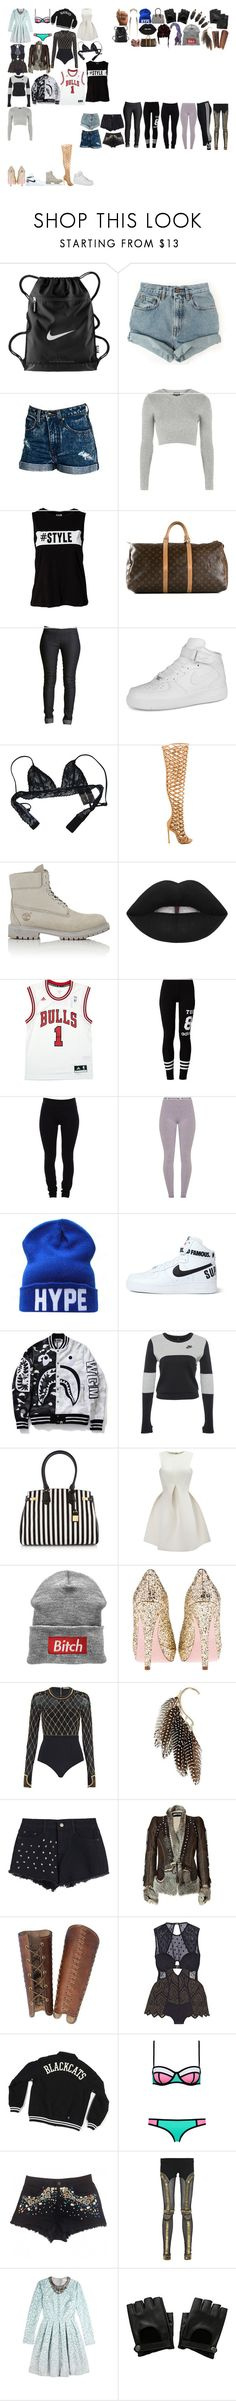 """""""Packing for Tour"""" by kaelighofficial ❤ liked on Polyvore featuring NIKE, Nasty Gal, Wildfox, Topshop, Vero Moda, Louis Vuitton, Boohoo, Chantal Thomass, Privileged and Timberland"""